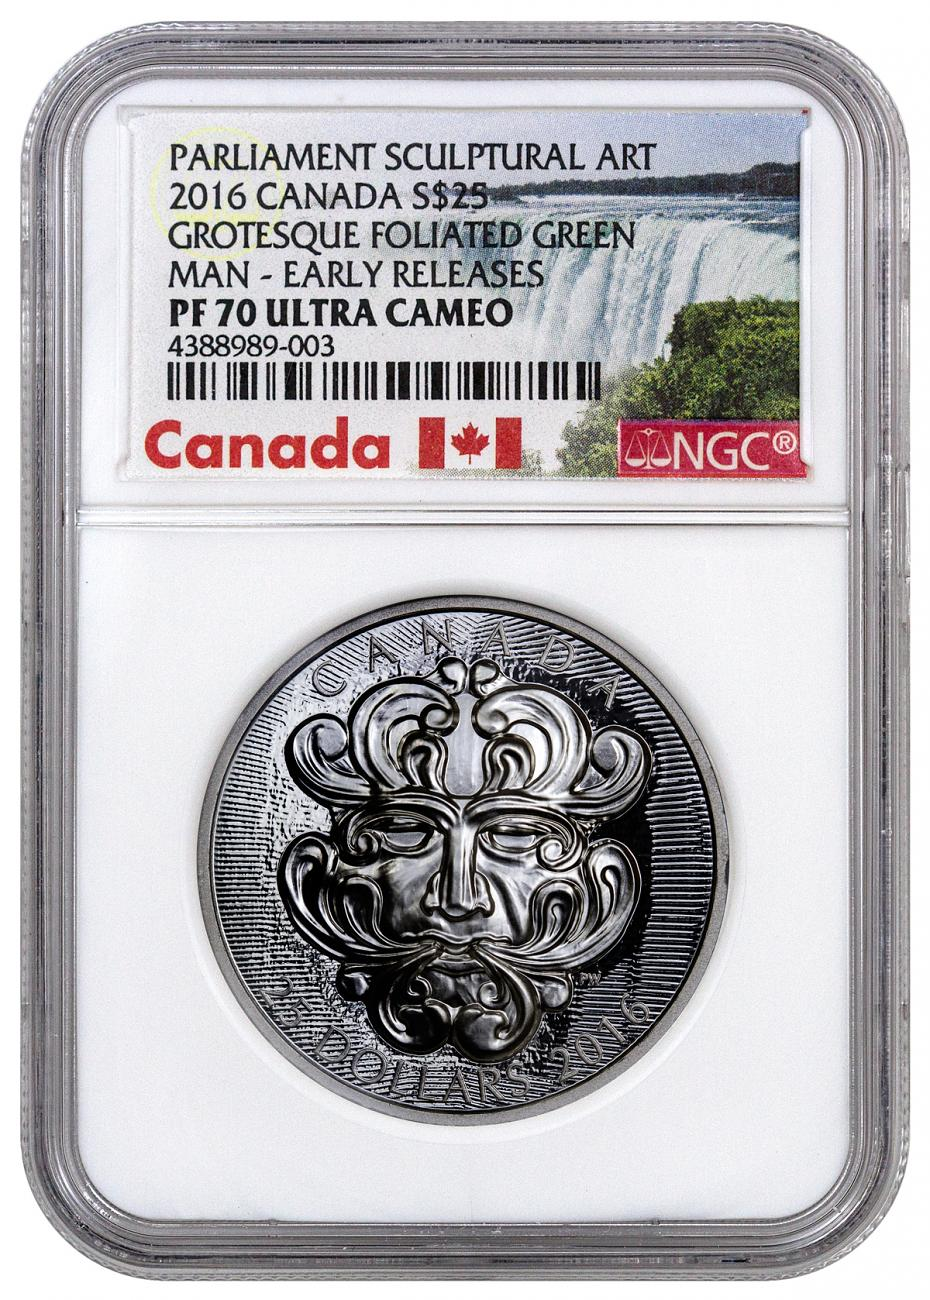 2016 Canada $25 1 oz. Ultra High Relief Proof Silver Sculptural Art of Parliament - Grotesque Foliated Green Man - NGC PF70 UC Early Releases (Exclusive Canada Label)